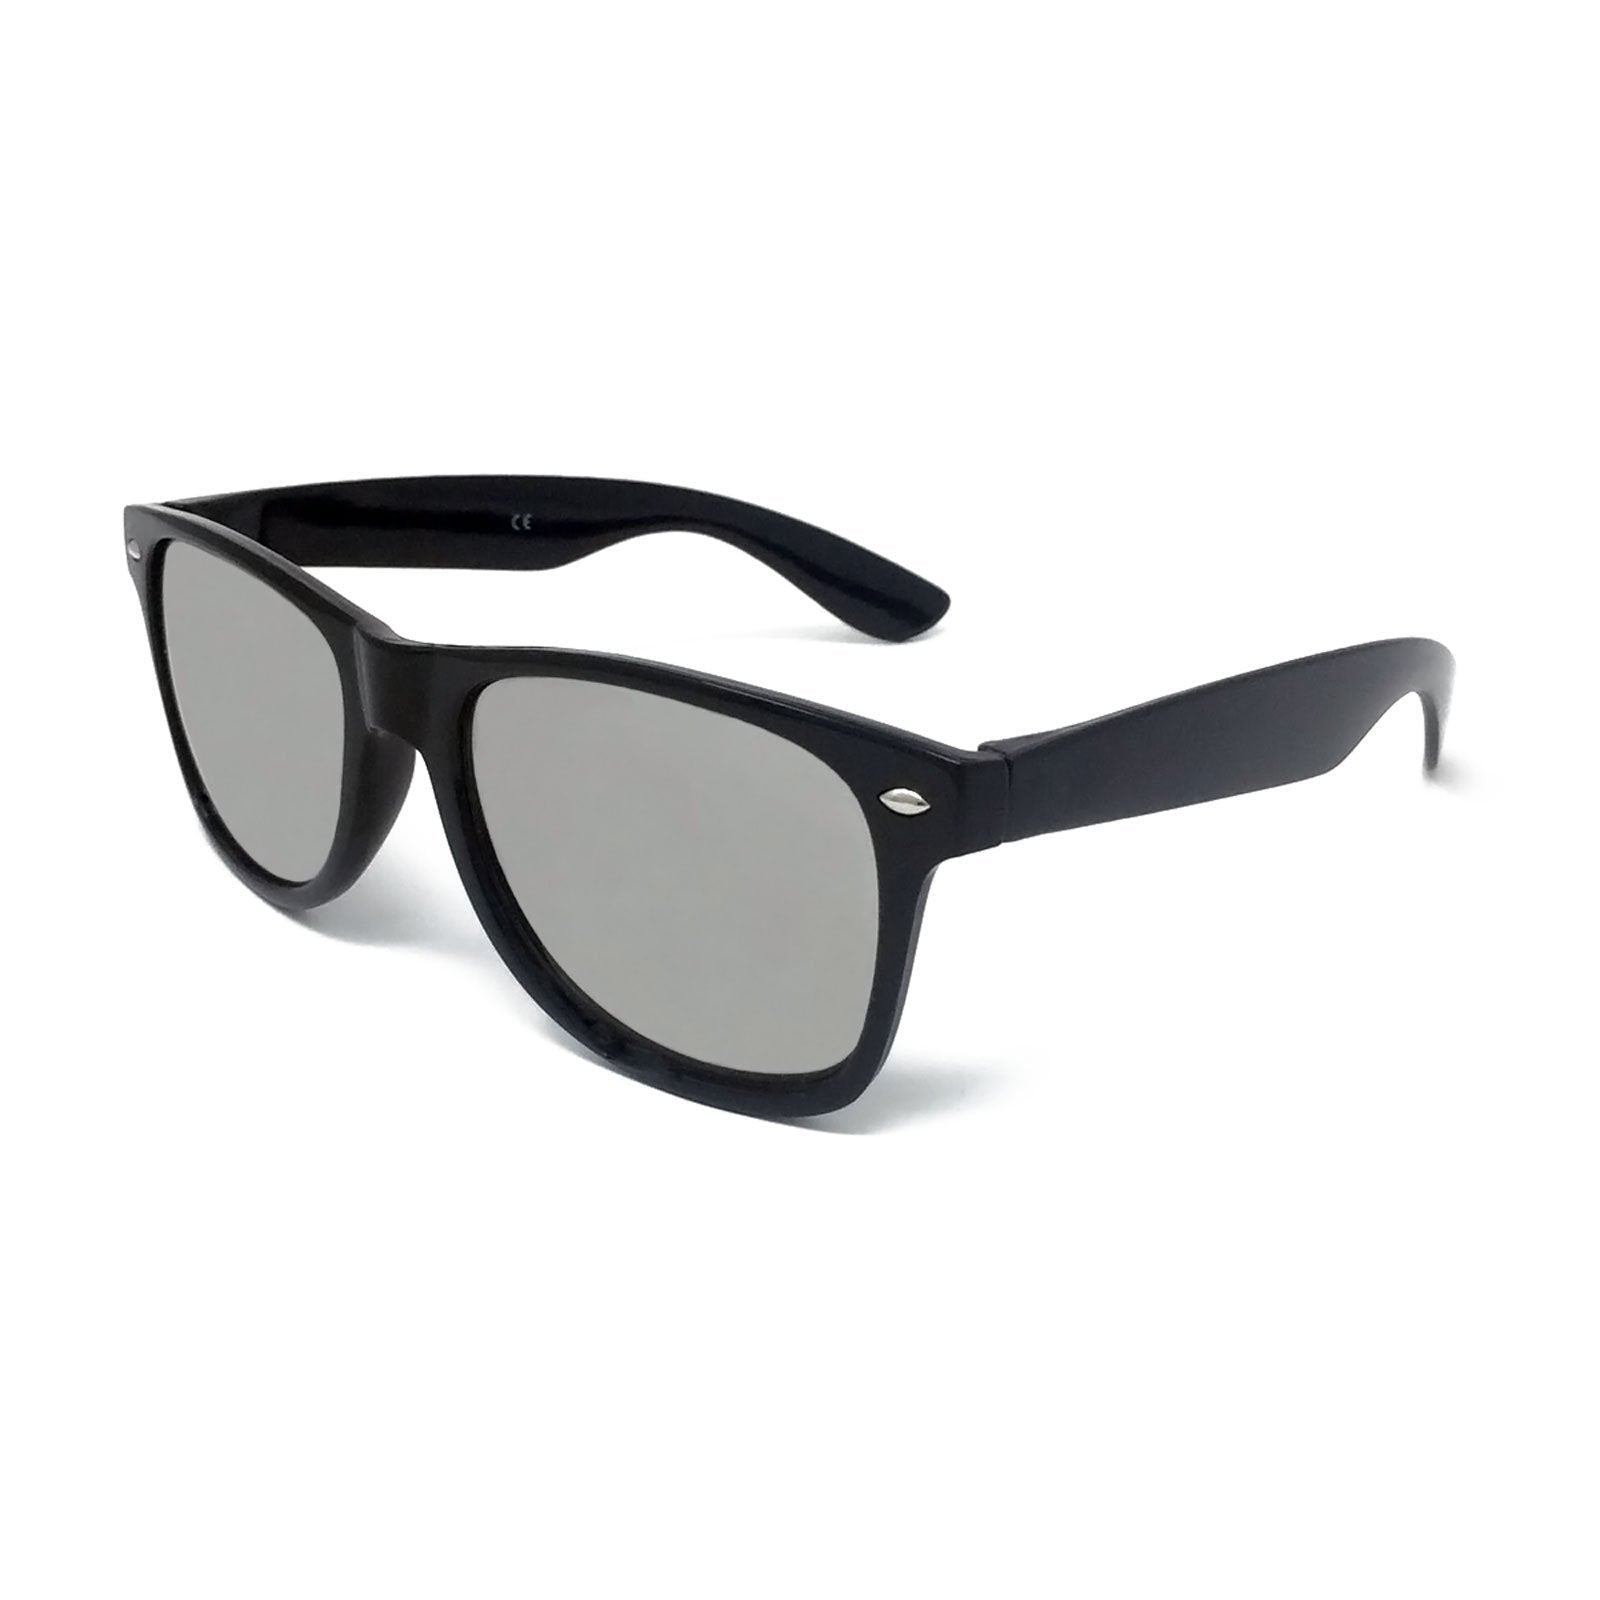 Wholesale Classic Sunglasses - Black Frame, Silver Mirrored Lens